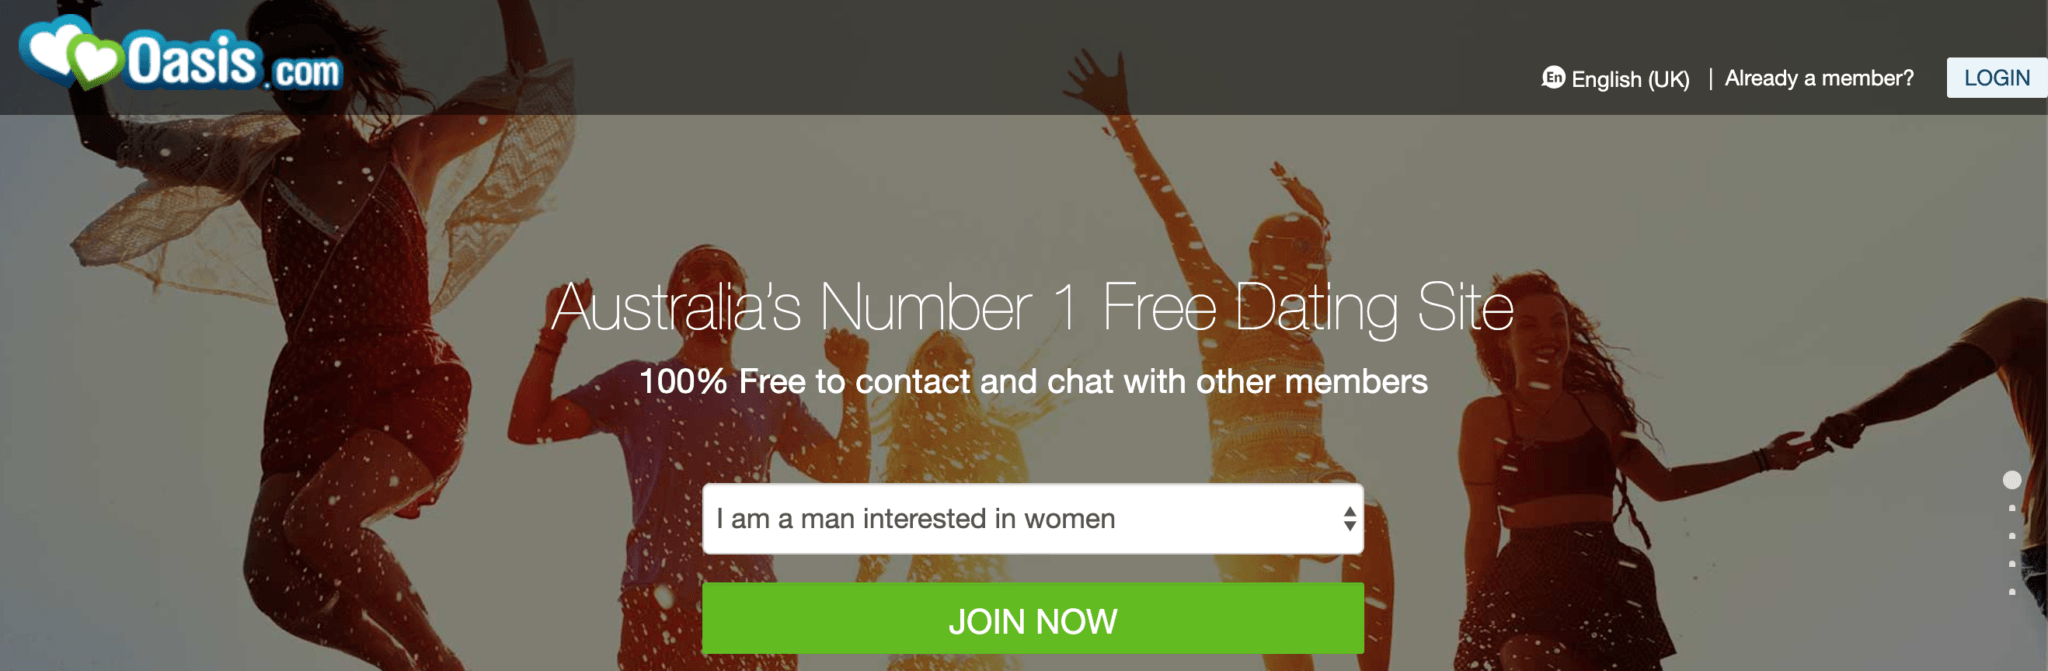 Online dating software 2019 | Oasis | Beanstalk Single Mums